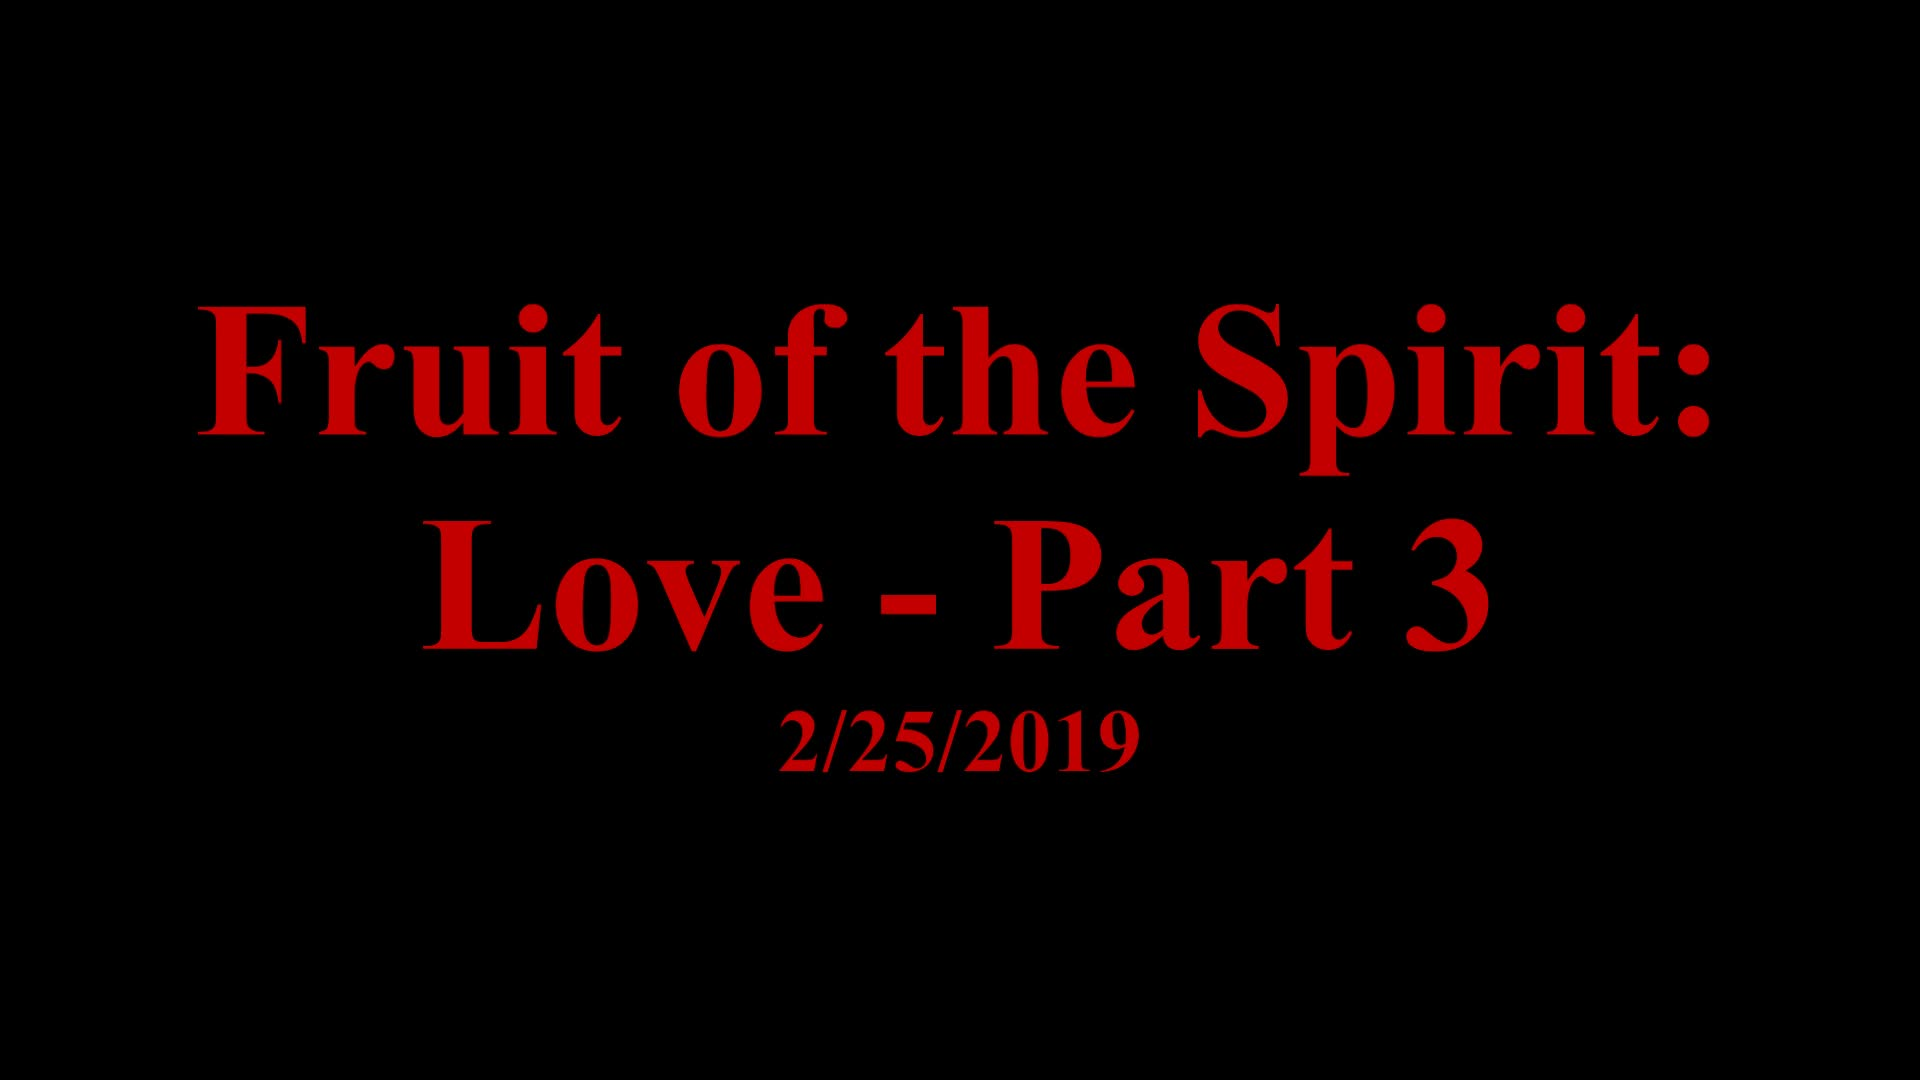 Fruit of the Spirit Love Part 3